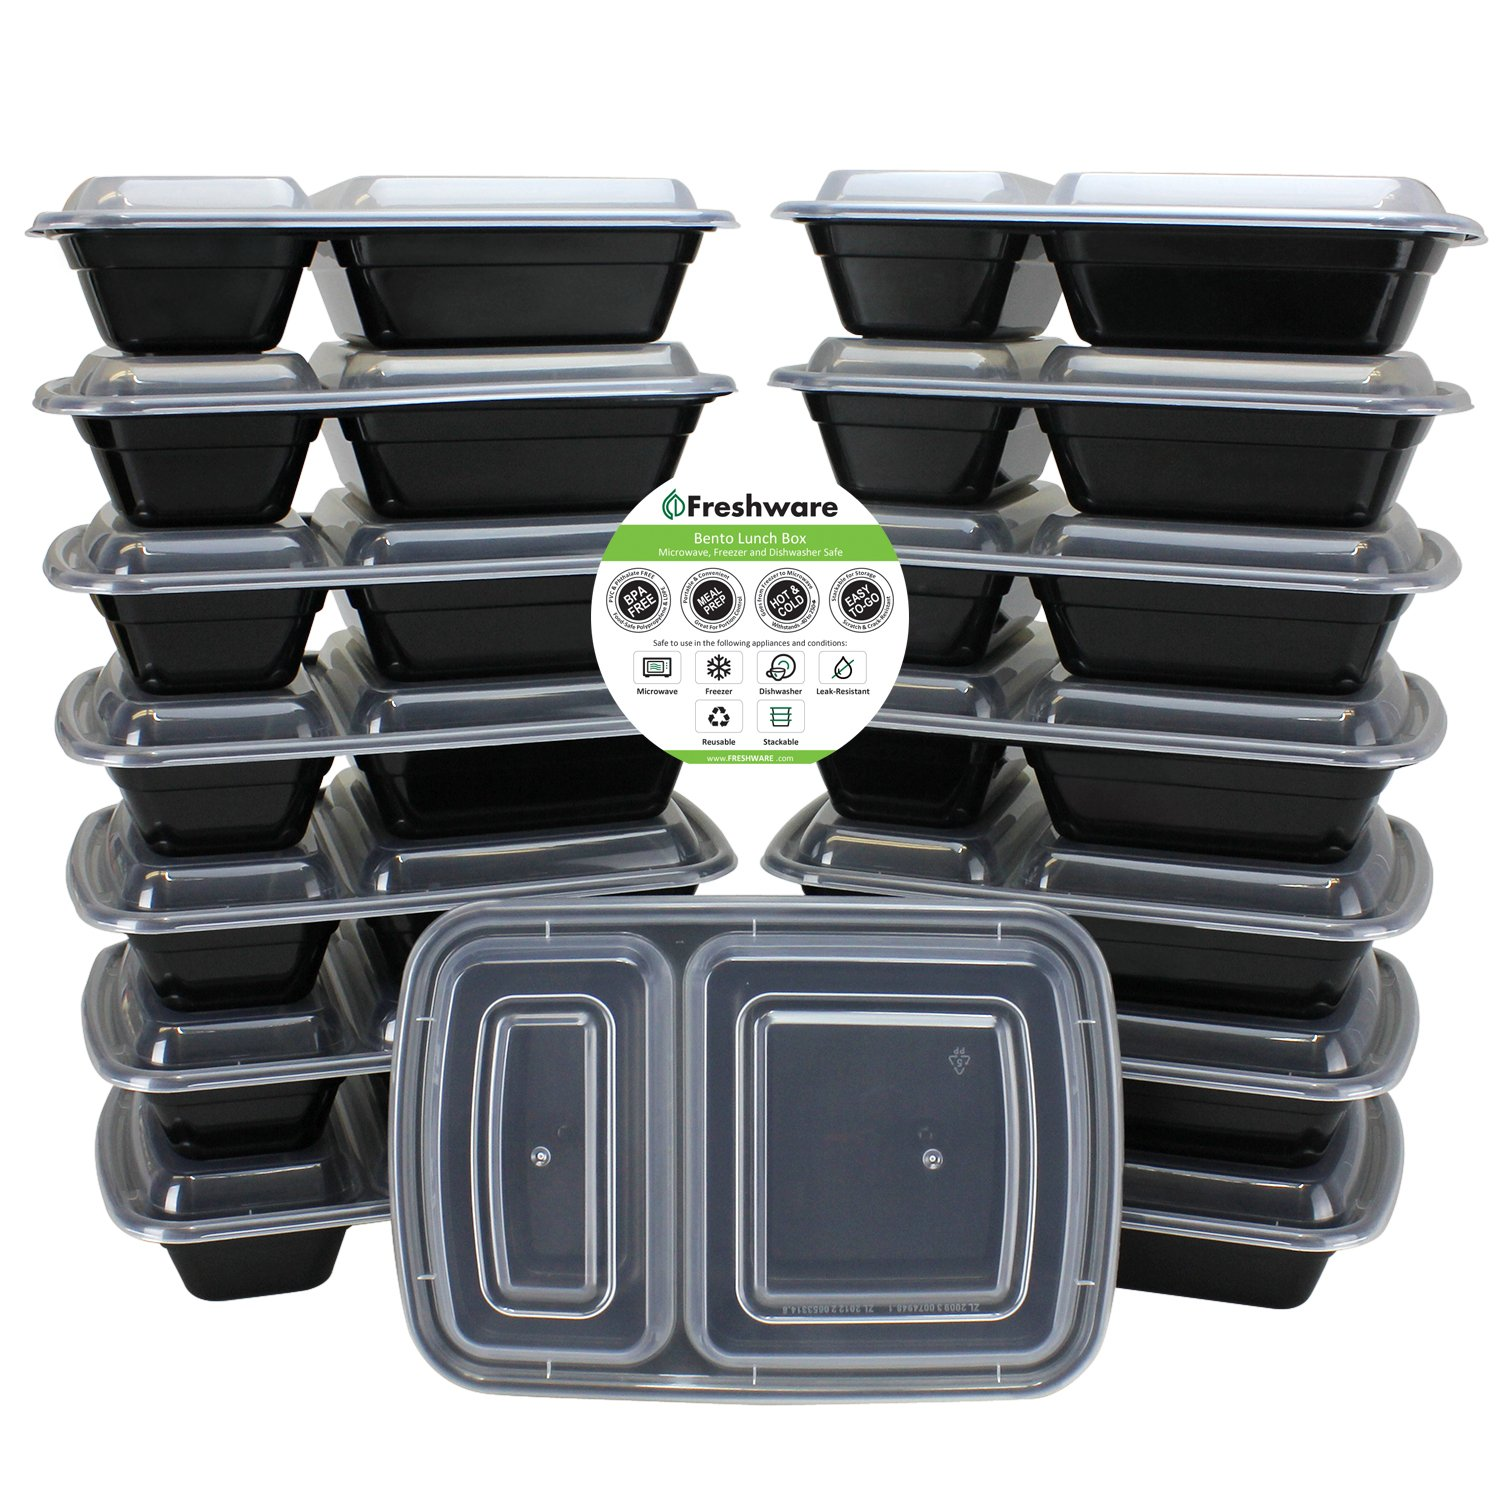 Freshware Meal Prep Containers [15 Pack] 2 Compartment with Lids, Food Containers, Lunch Box | BPA Free | Stackable | Bento Box, Microwave/Dishwasher/Freezer Safe, Portion Control, 15 day fix (25 oz) by Freshware (Image #1)